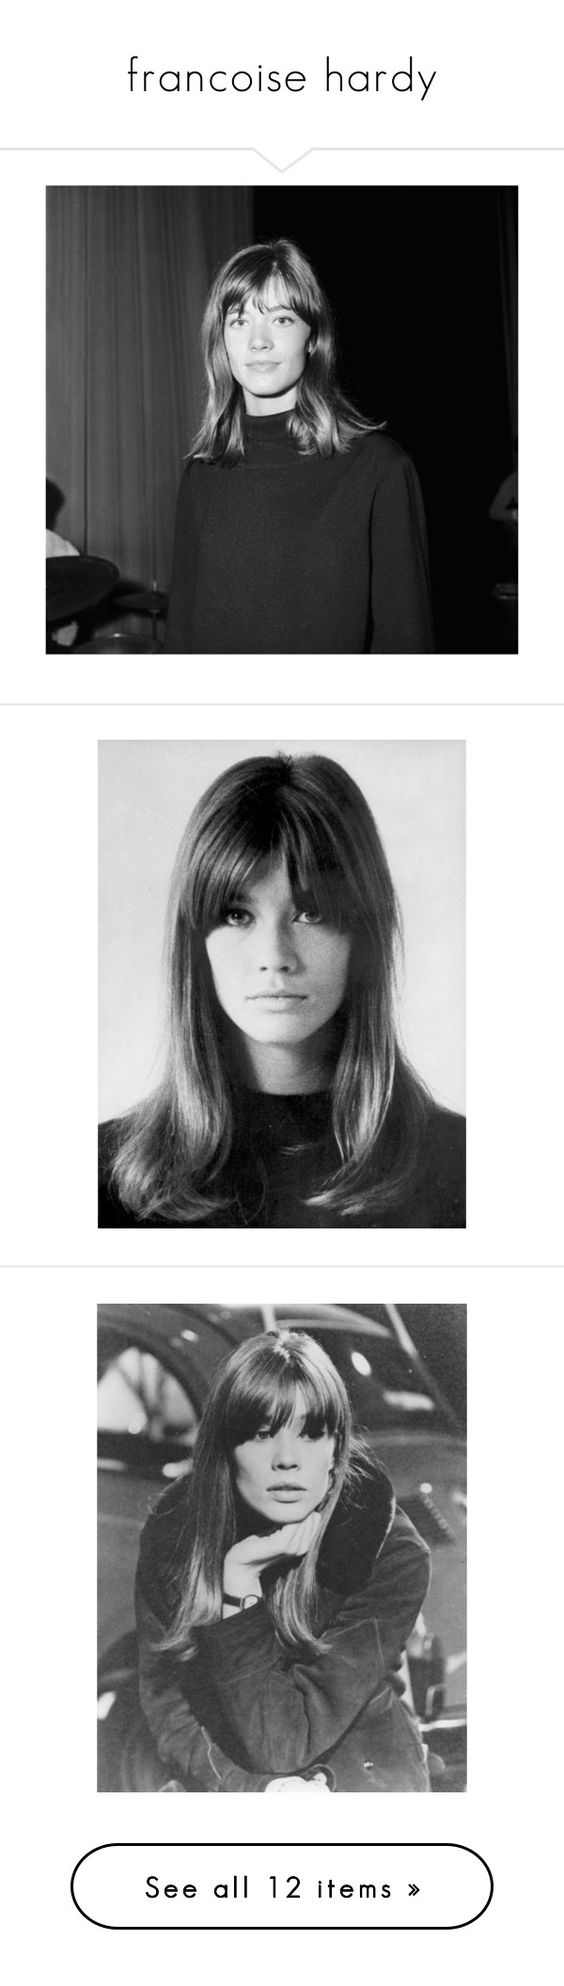 """""""francoise hardy"""" by d-rowsy ❤ liked on Polyvore featuring pictures, fillers, photo, pics, faces, people, photos, shoes, boots and clothes - shoes"""